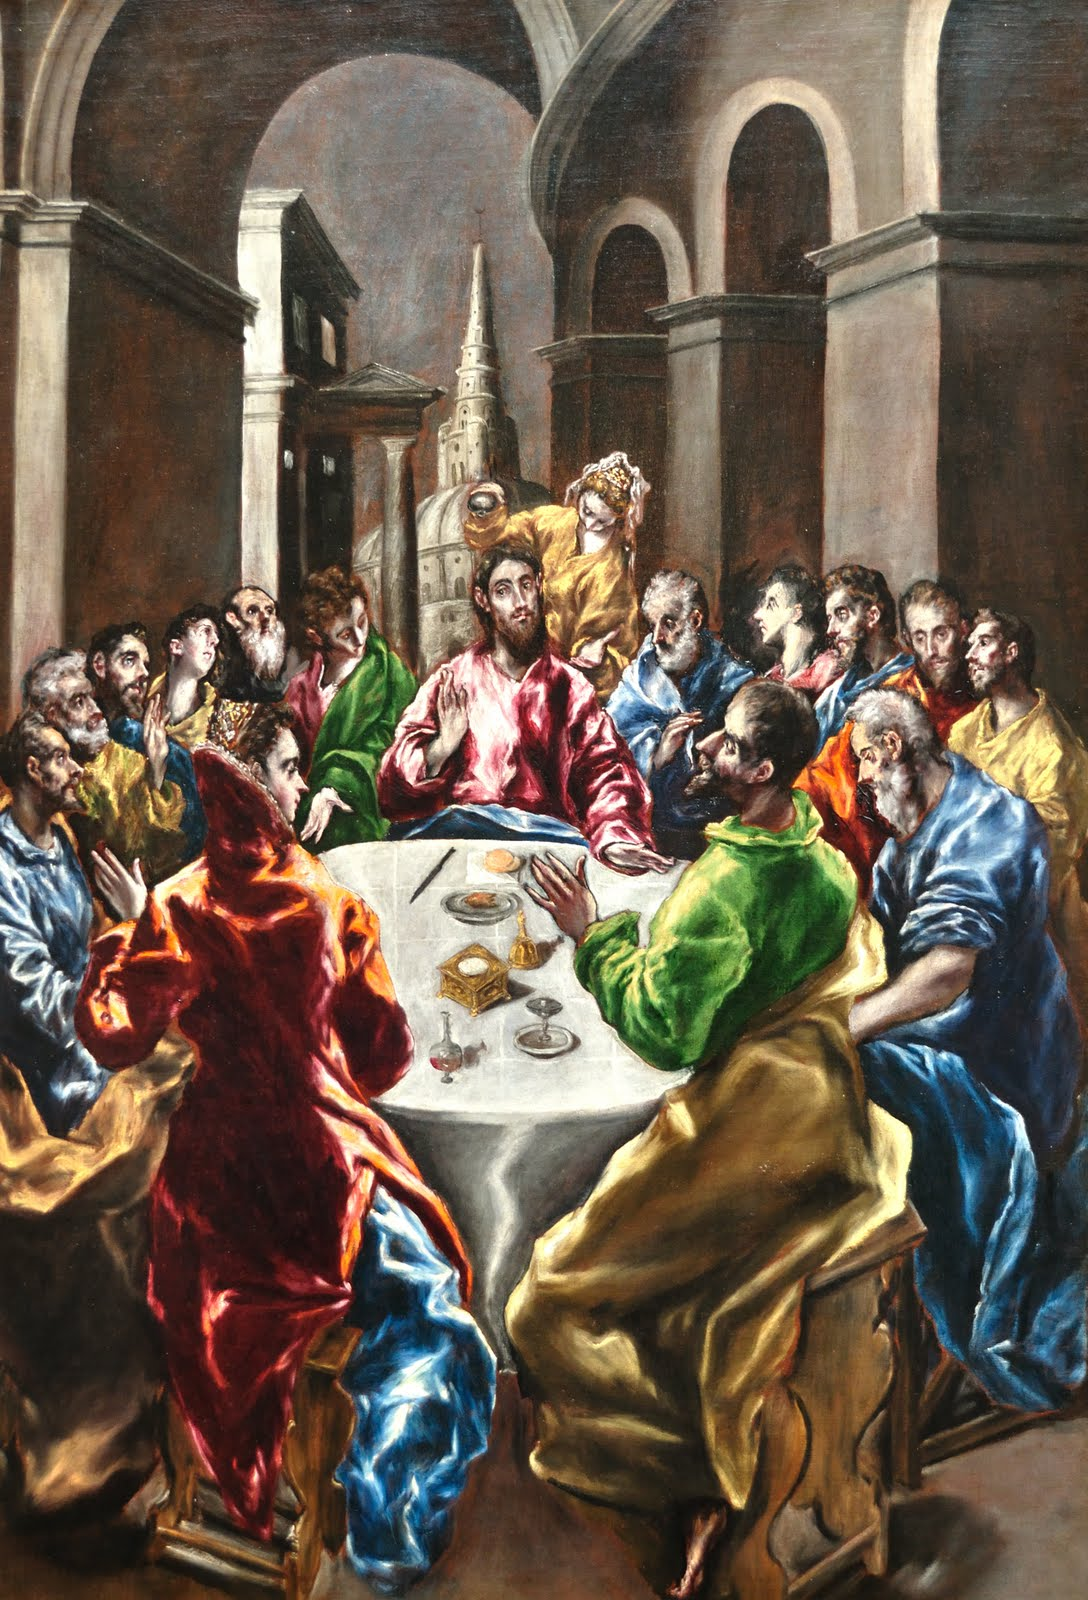 El Greco. The Feast in the House of Simon, 1608/1